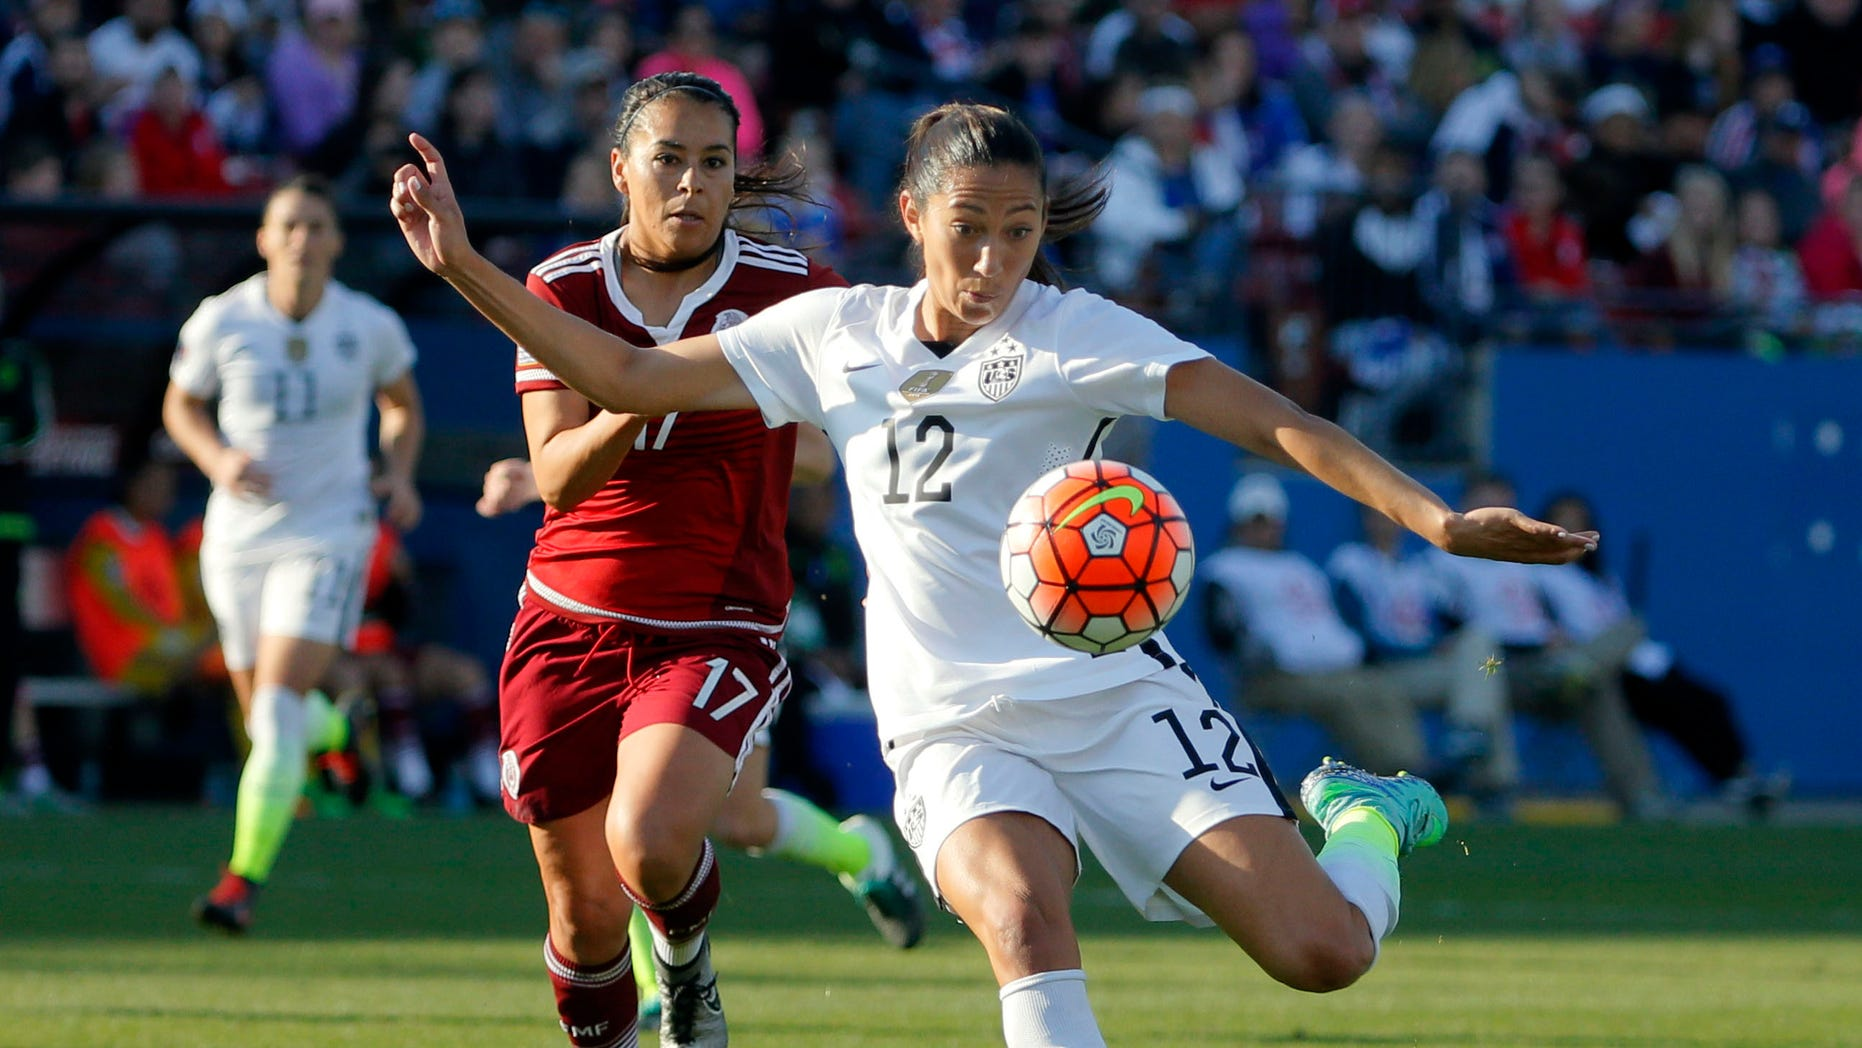 United States forward Christen Press (12) takes a shot at the goal as Mexico midfielder Veronica Perez (17) watches in the second half of a CONCACAF Olympic qualifying tournament soccer match, Saturday, Feb. 13, 2016, in Frisco, Texas. The U.S. won 1-0. (AP Photo/Tony Gutierrez)